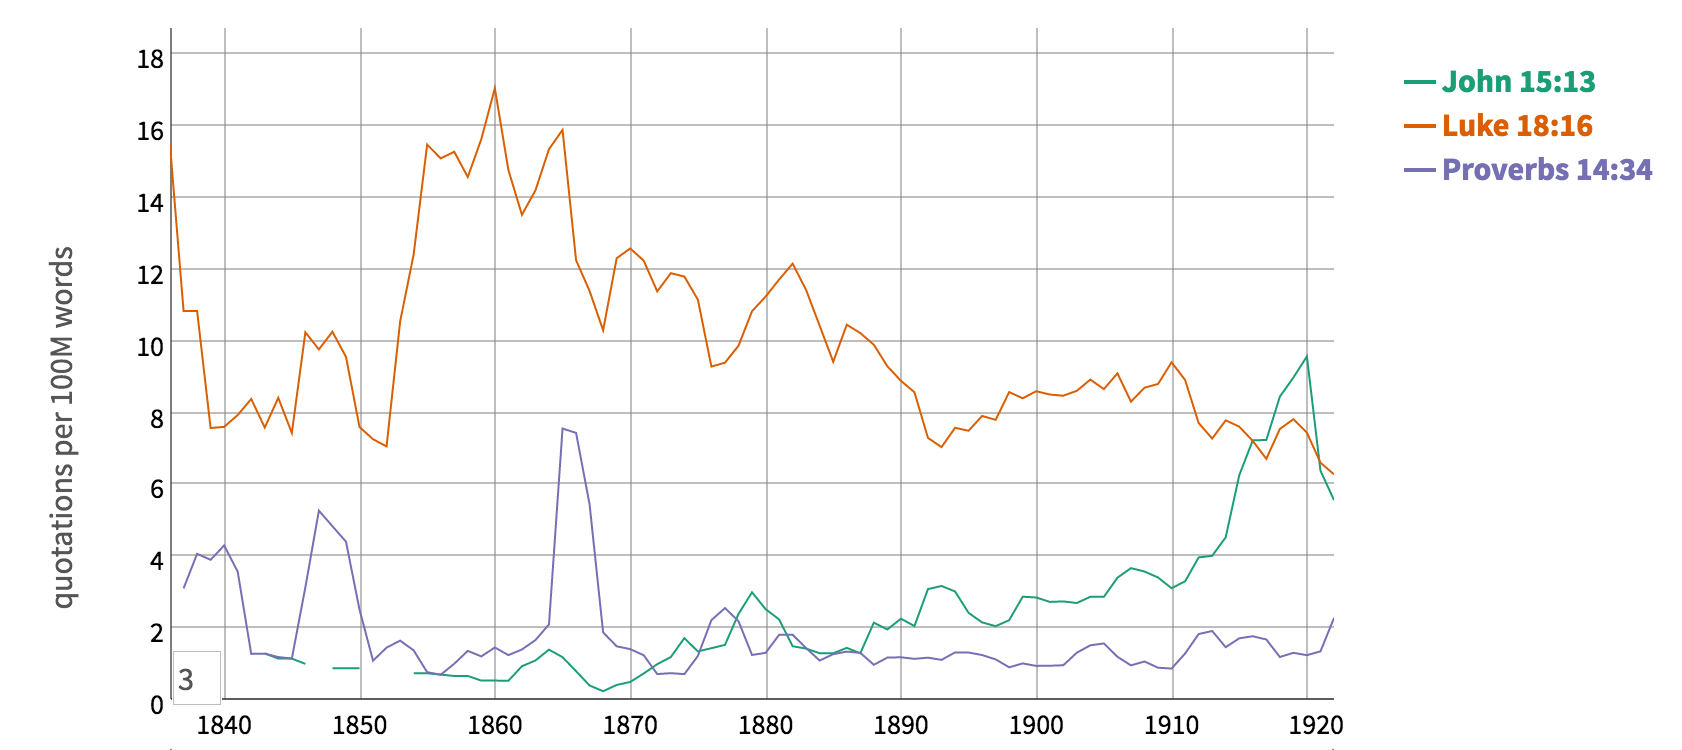 The trends in how three verses (John 15:13; Proverbs 14:34; and Luke 18:16) were used over time. Notice the very different temporal patterns of usage.